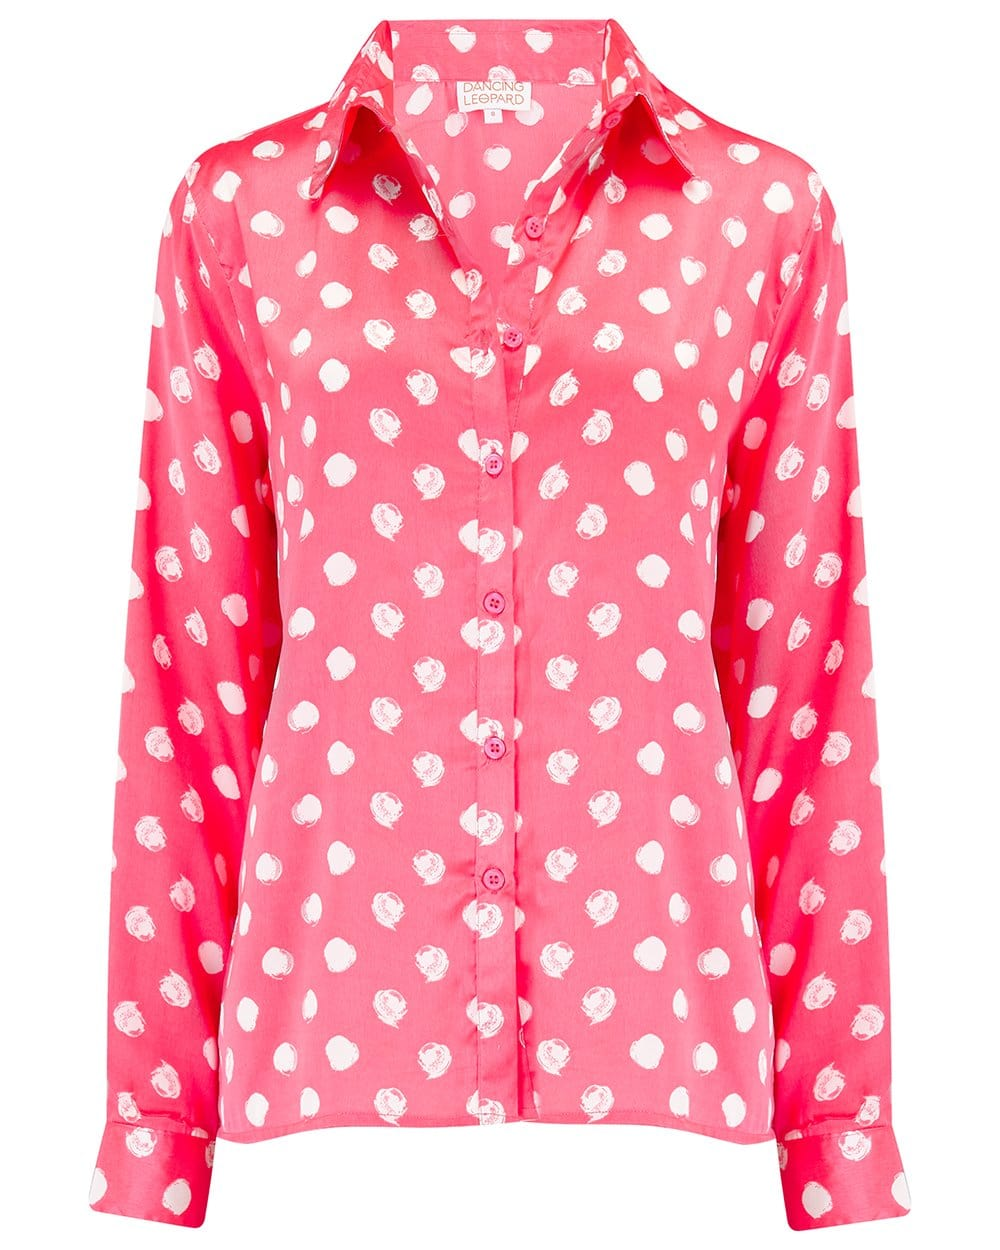 Front view of Nevada Shirt in Red Dotty Print on white background